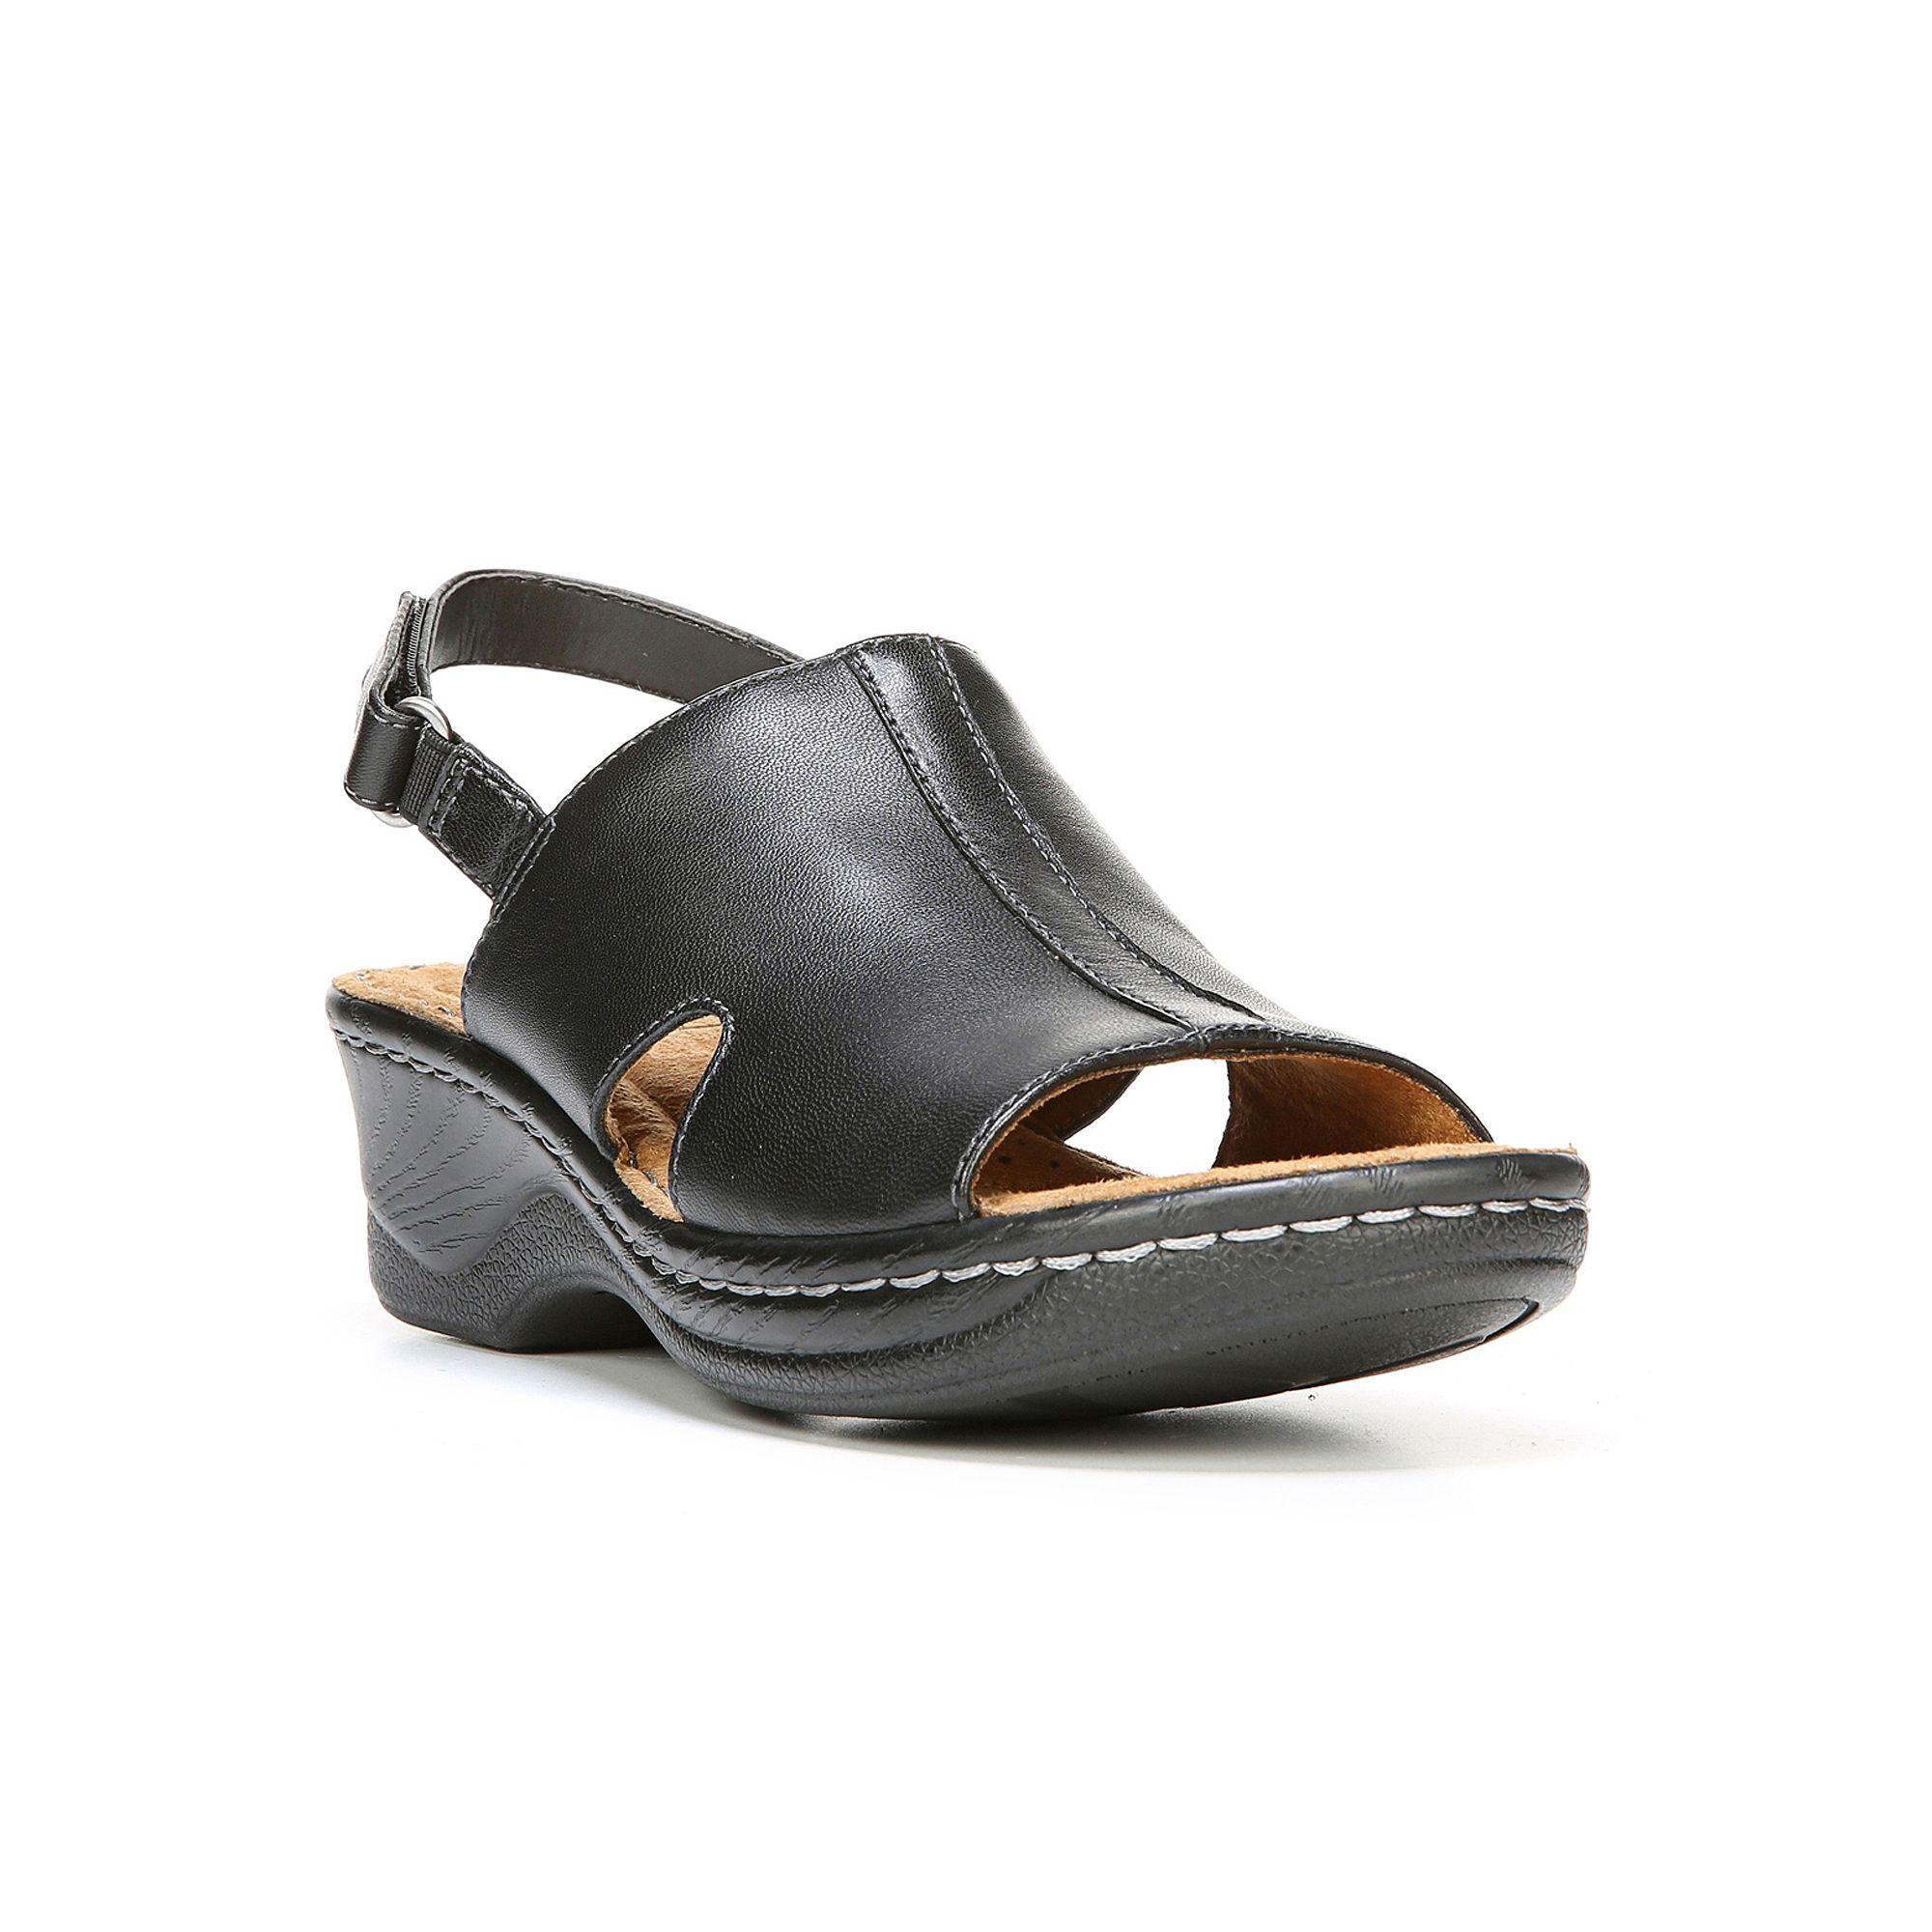 fdb2a8a9f03c NaturalSoul by naturalizer Seleste Women s Leather Wedge Sandals ...